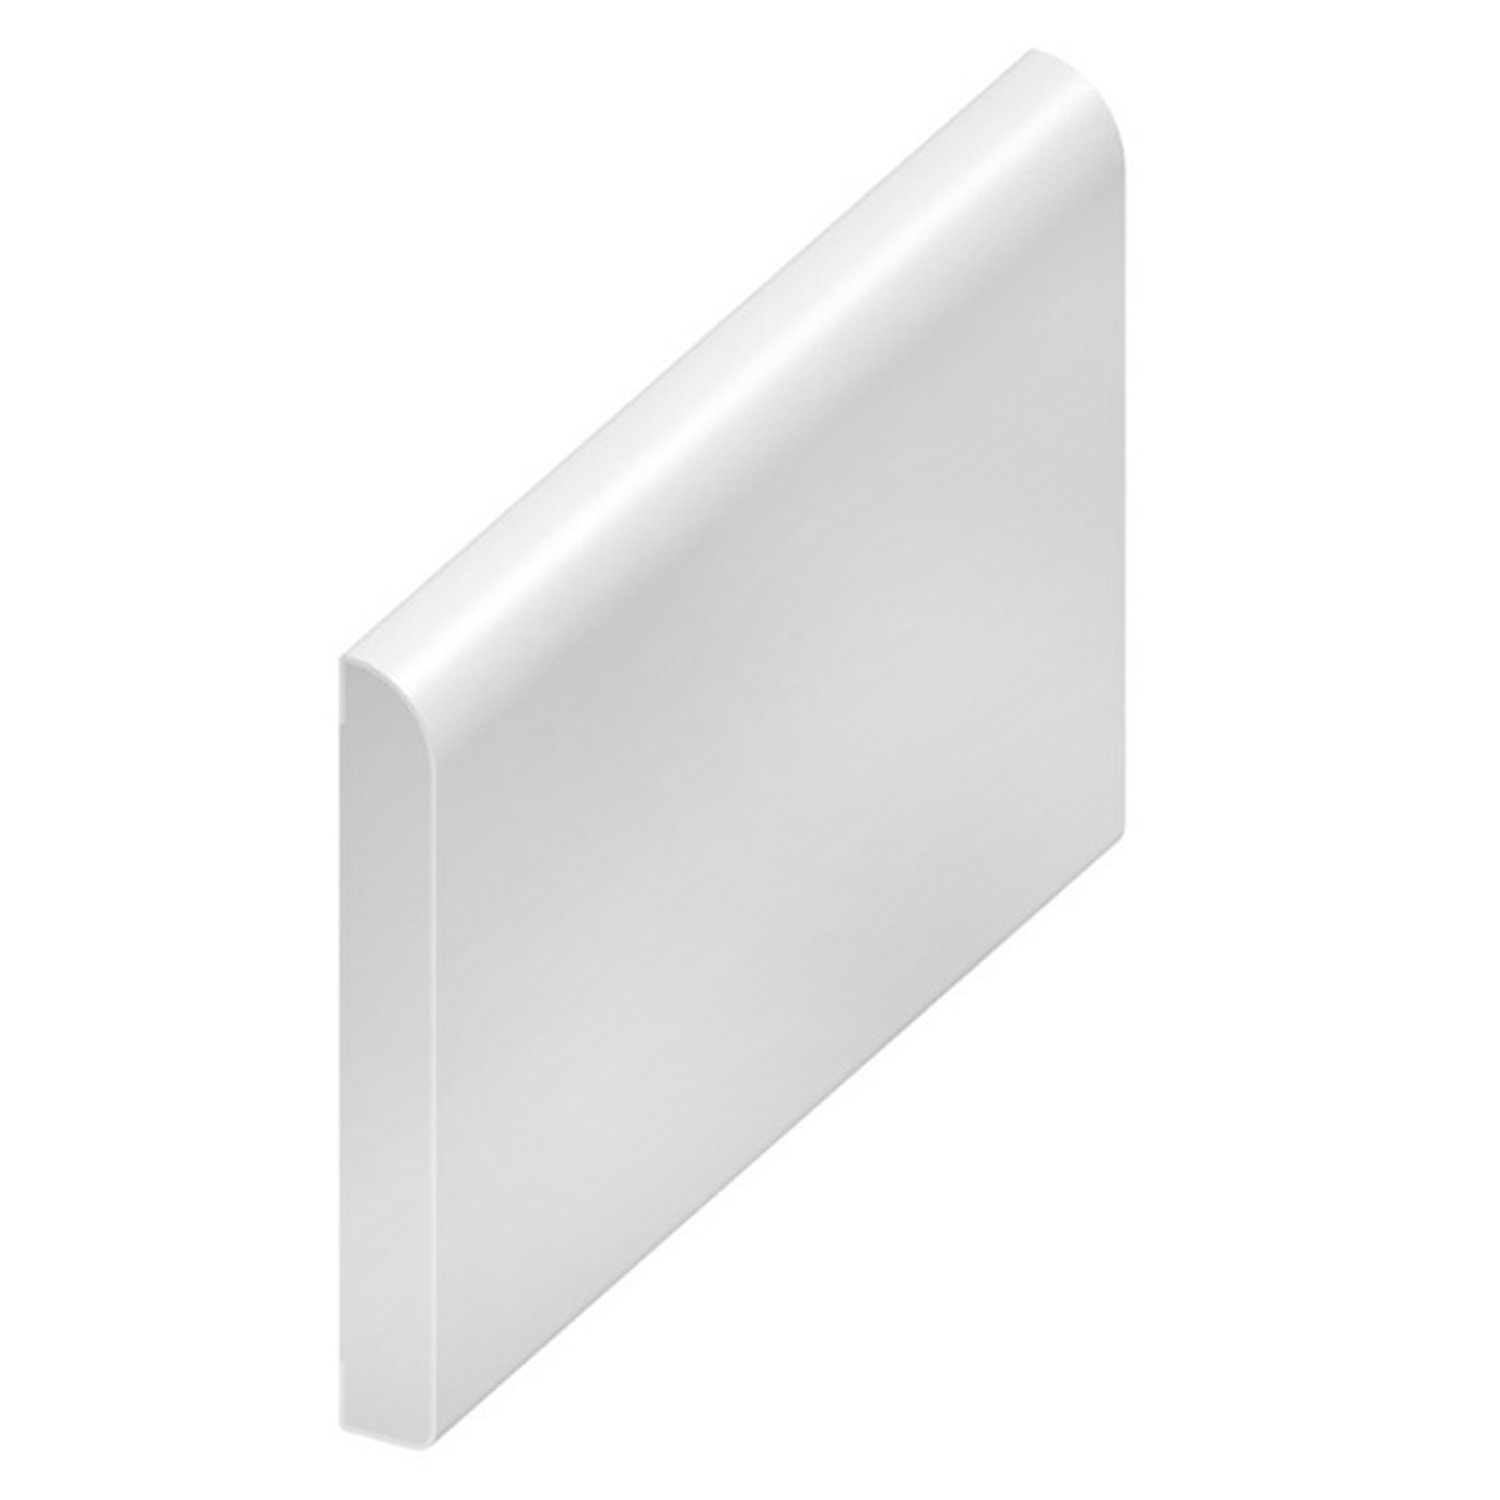 Pvc door casing upvc window and door architrave u0026 for Window plastic